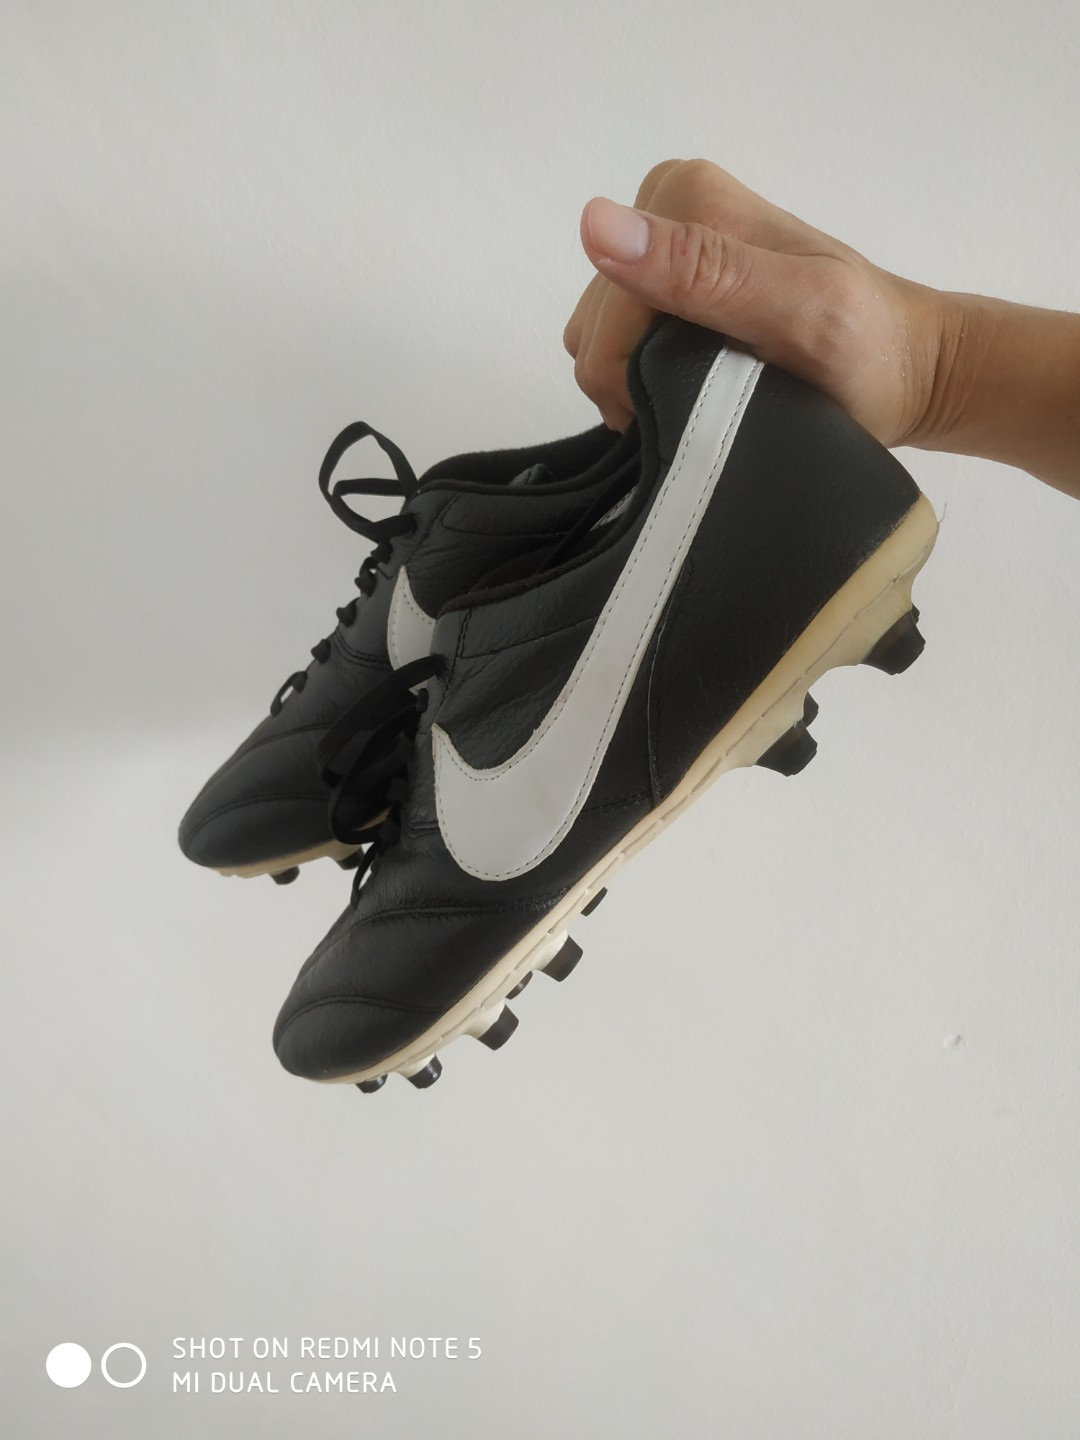 separation shoes c9837 55fac nike tiempo premier limited edition sale | Up to 75% Discounts